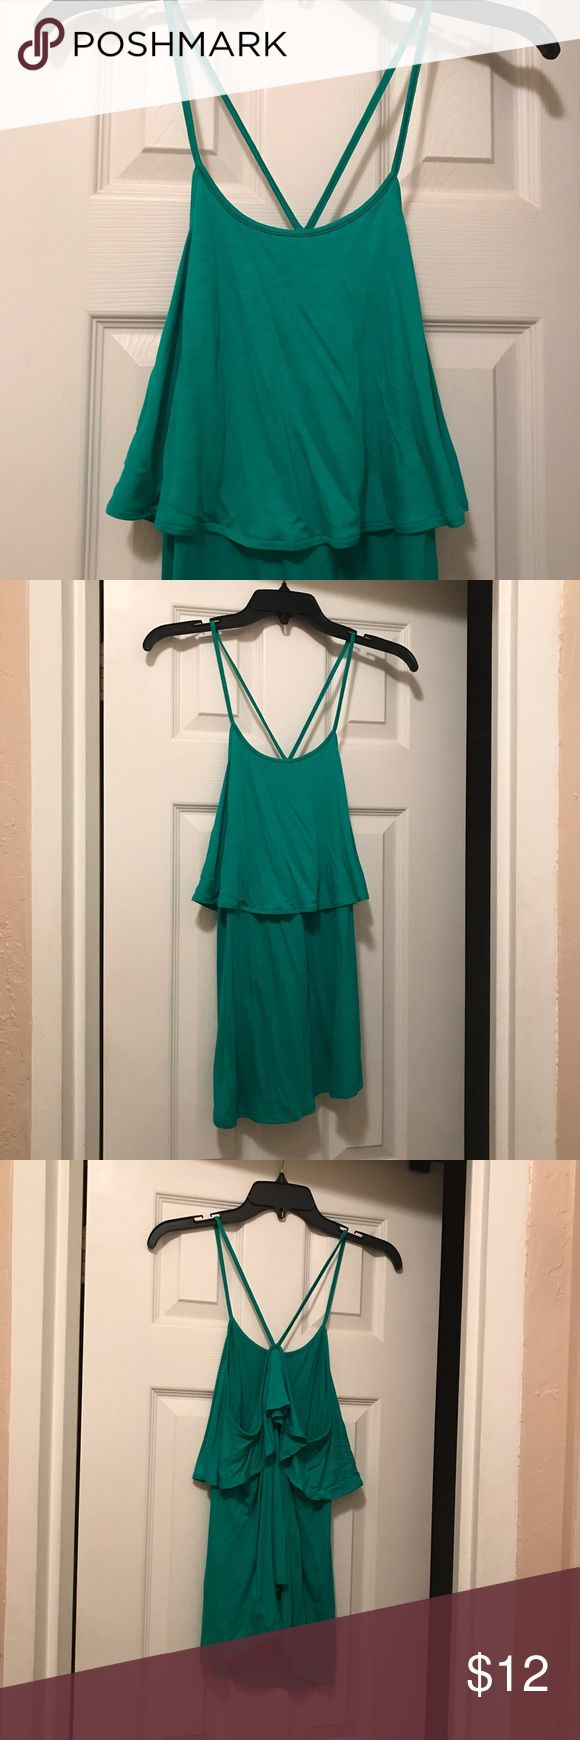 Old Navy Green Tank Green strappy tank from Old Navy. Longer fit. Only worn once. Old Navy Tops Tank Tops